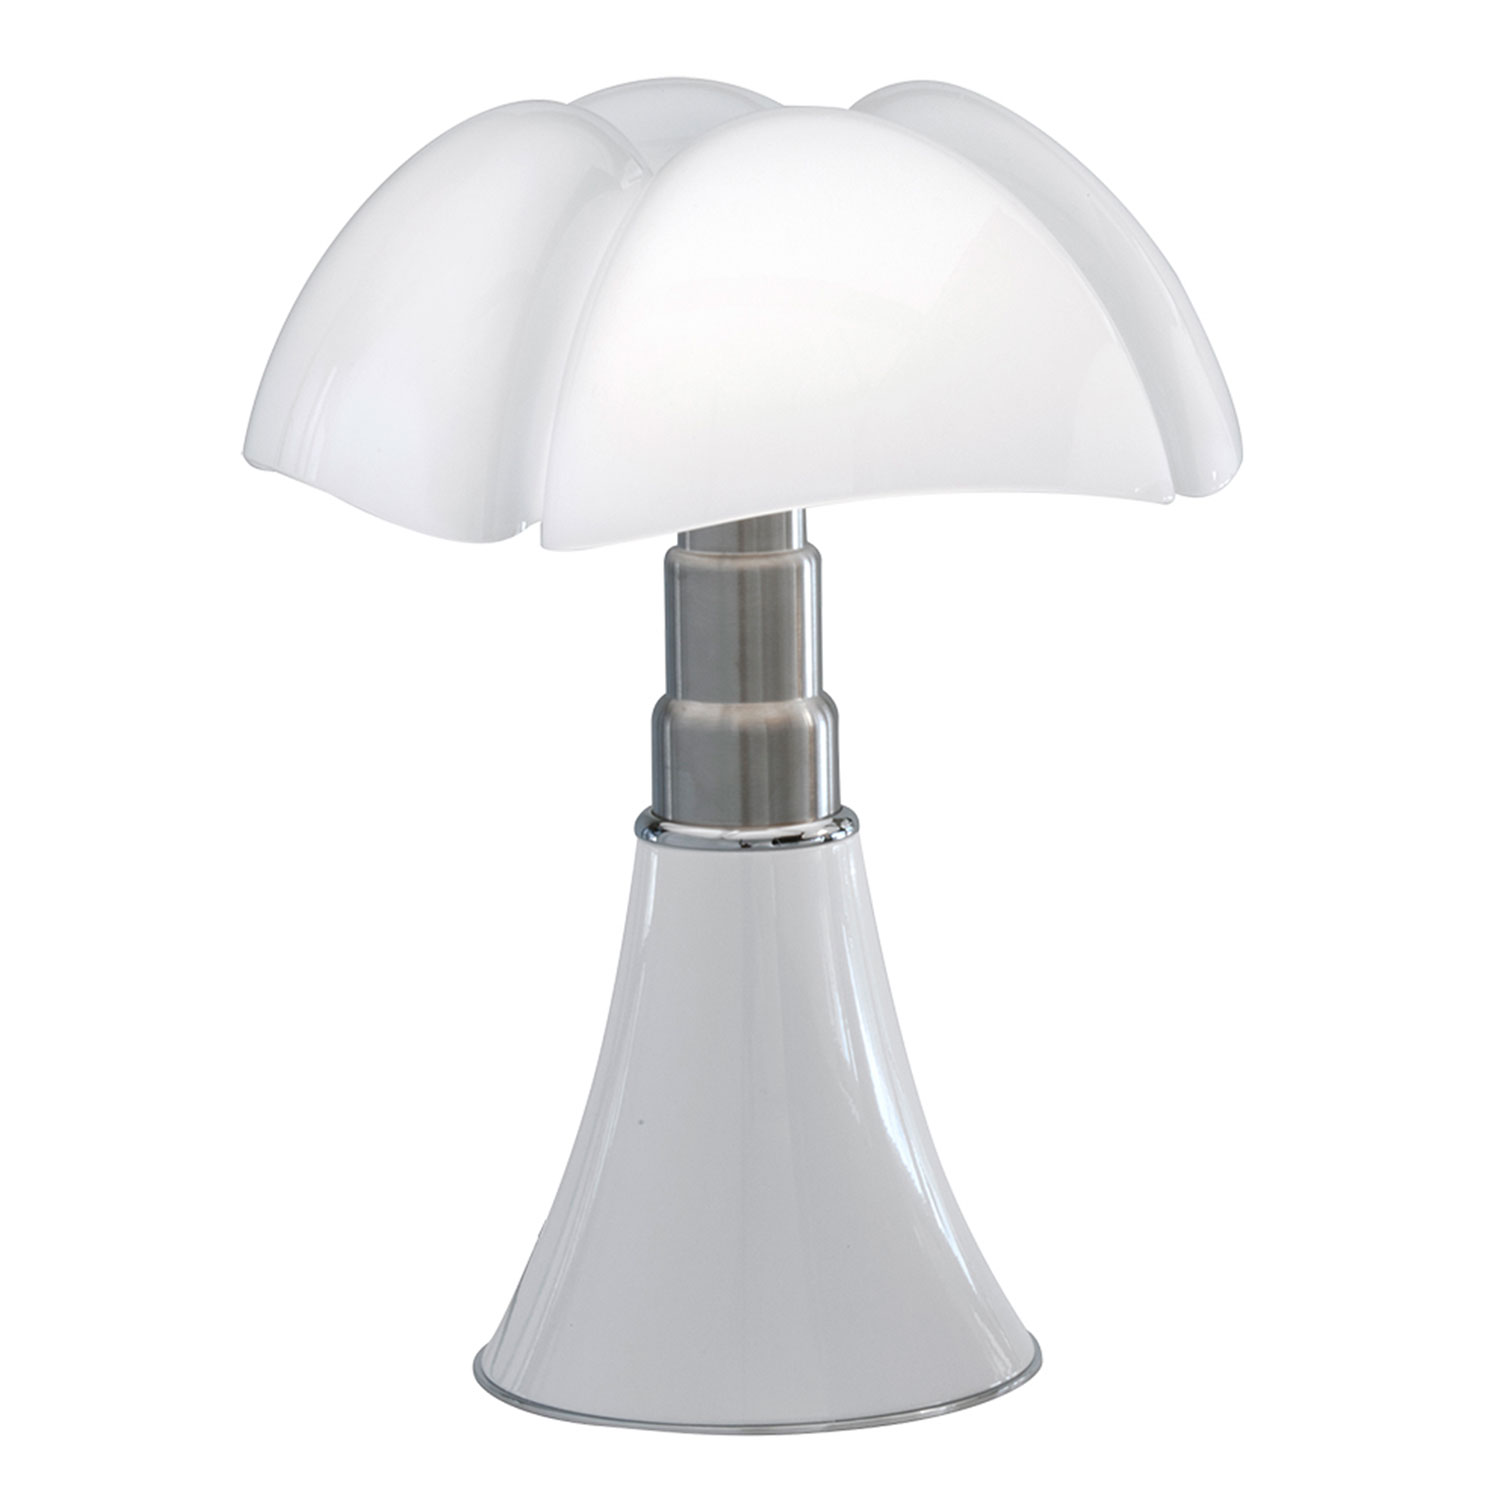 Lampe Pipistrella Pipistrello Mini Table Lamp Dimmable Cordless White